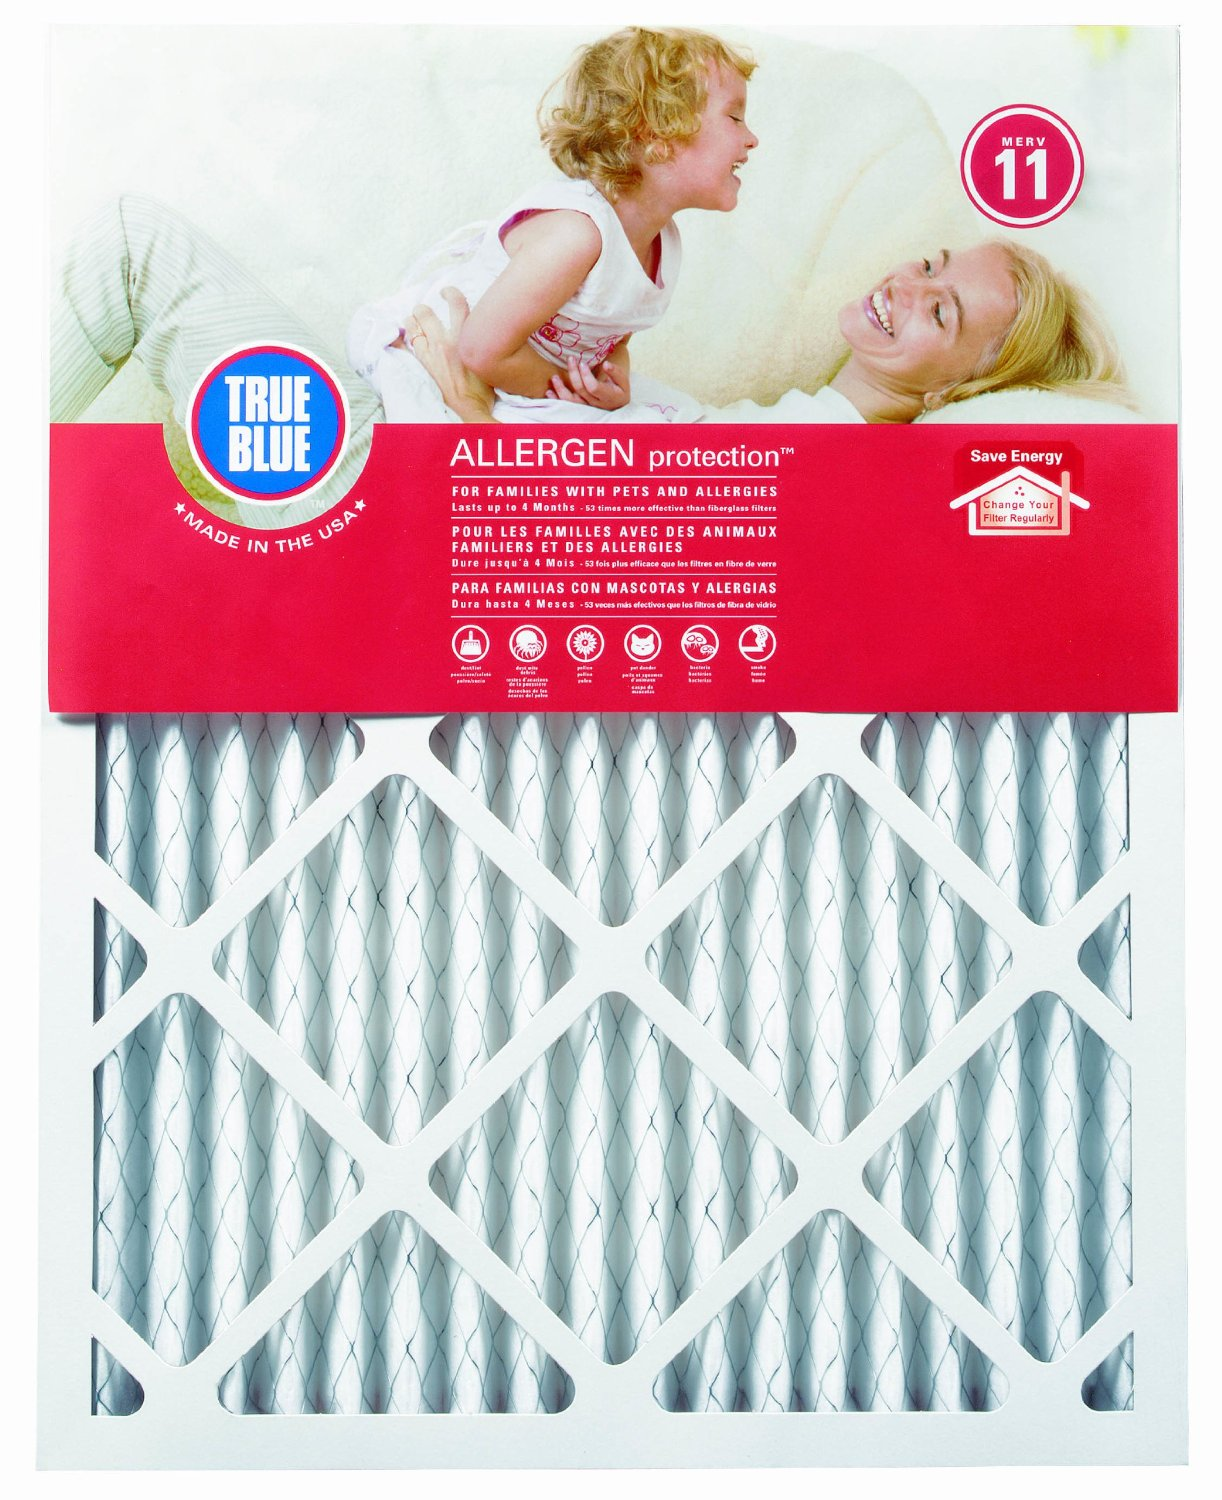 merv 11 rated furnace filter